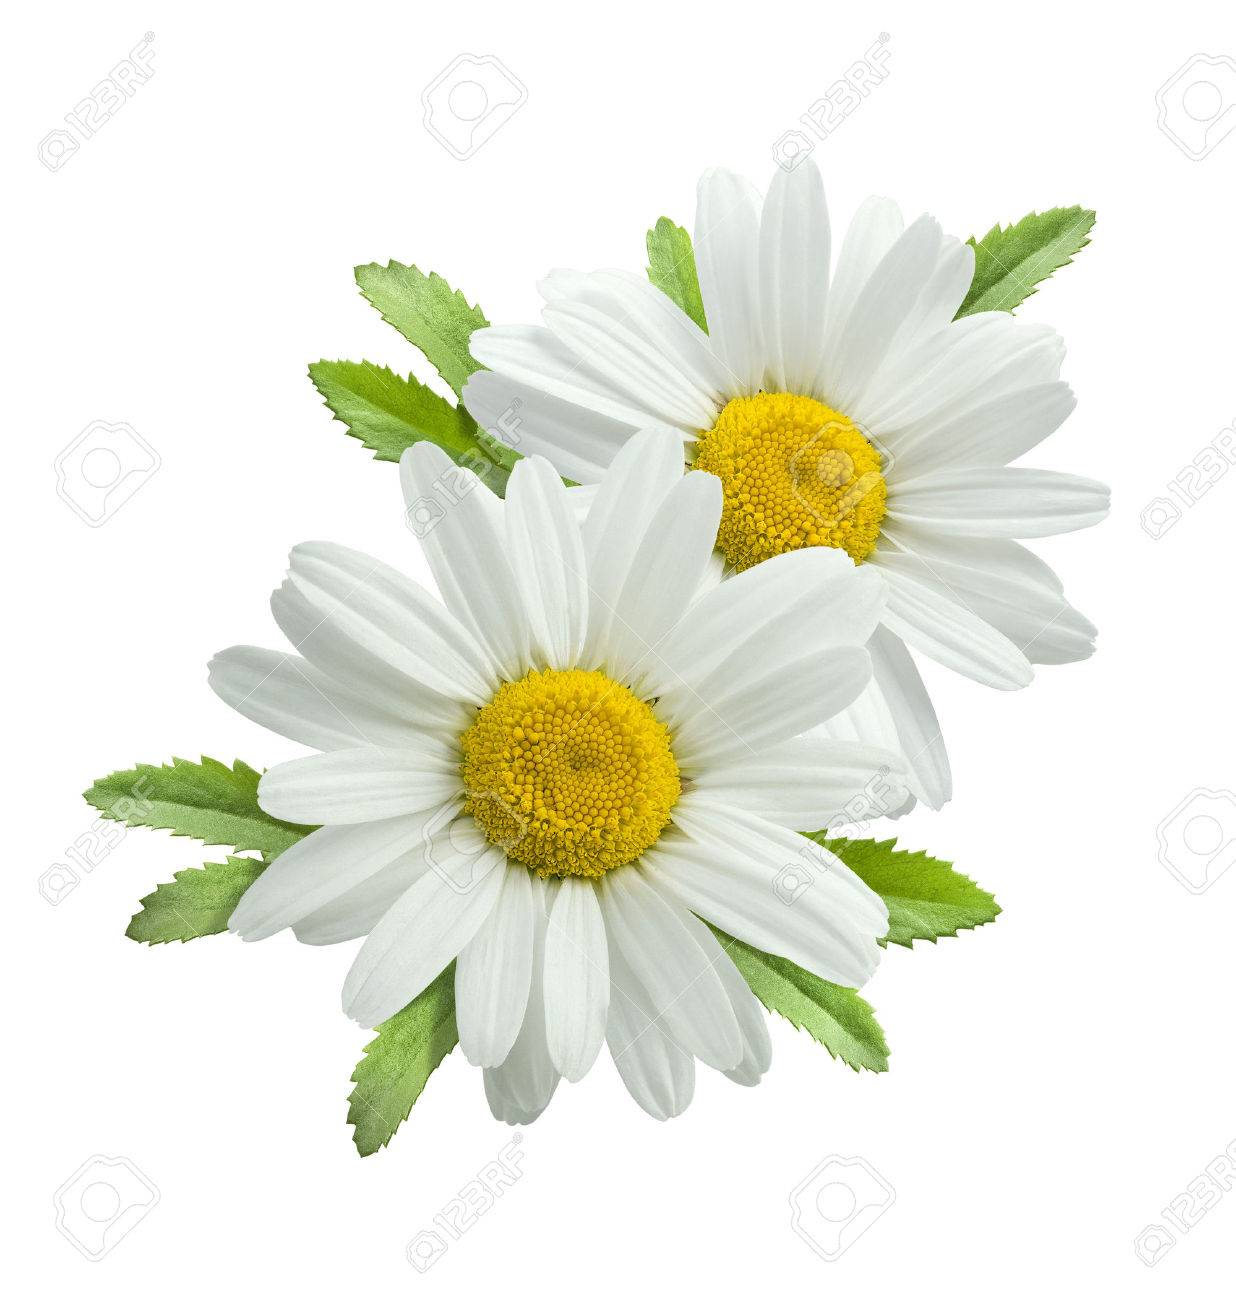 Double vertical chamomile composition isolated on white background as package design element - 42564662